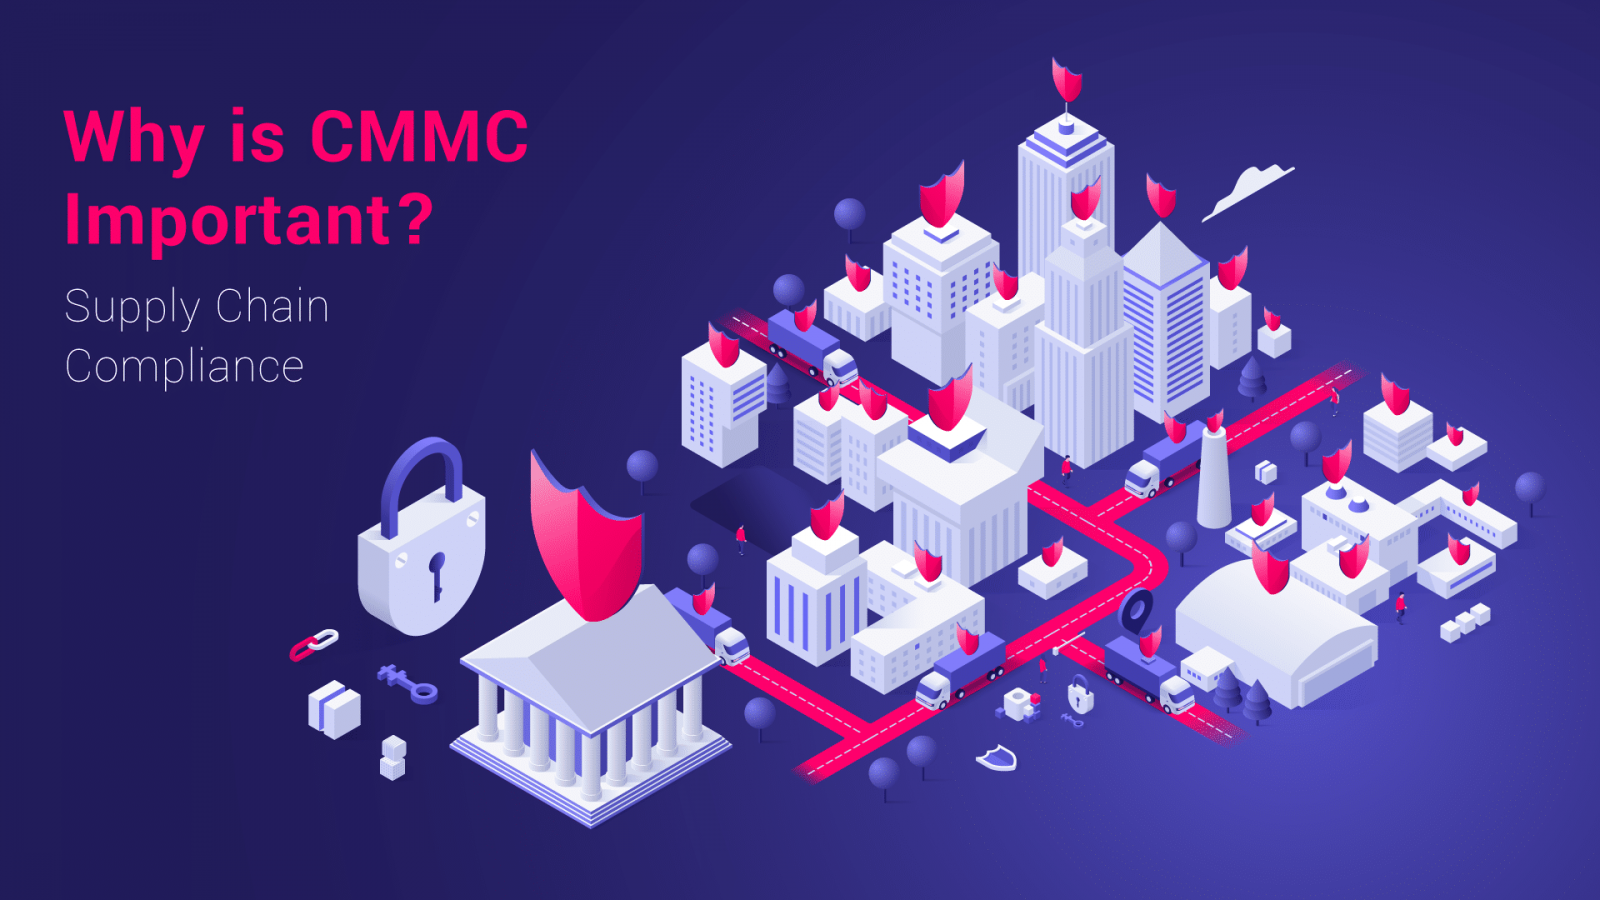 Why is CMMC important?